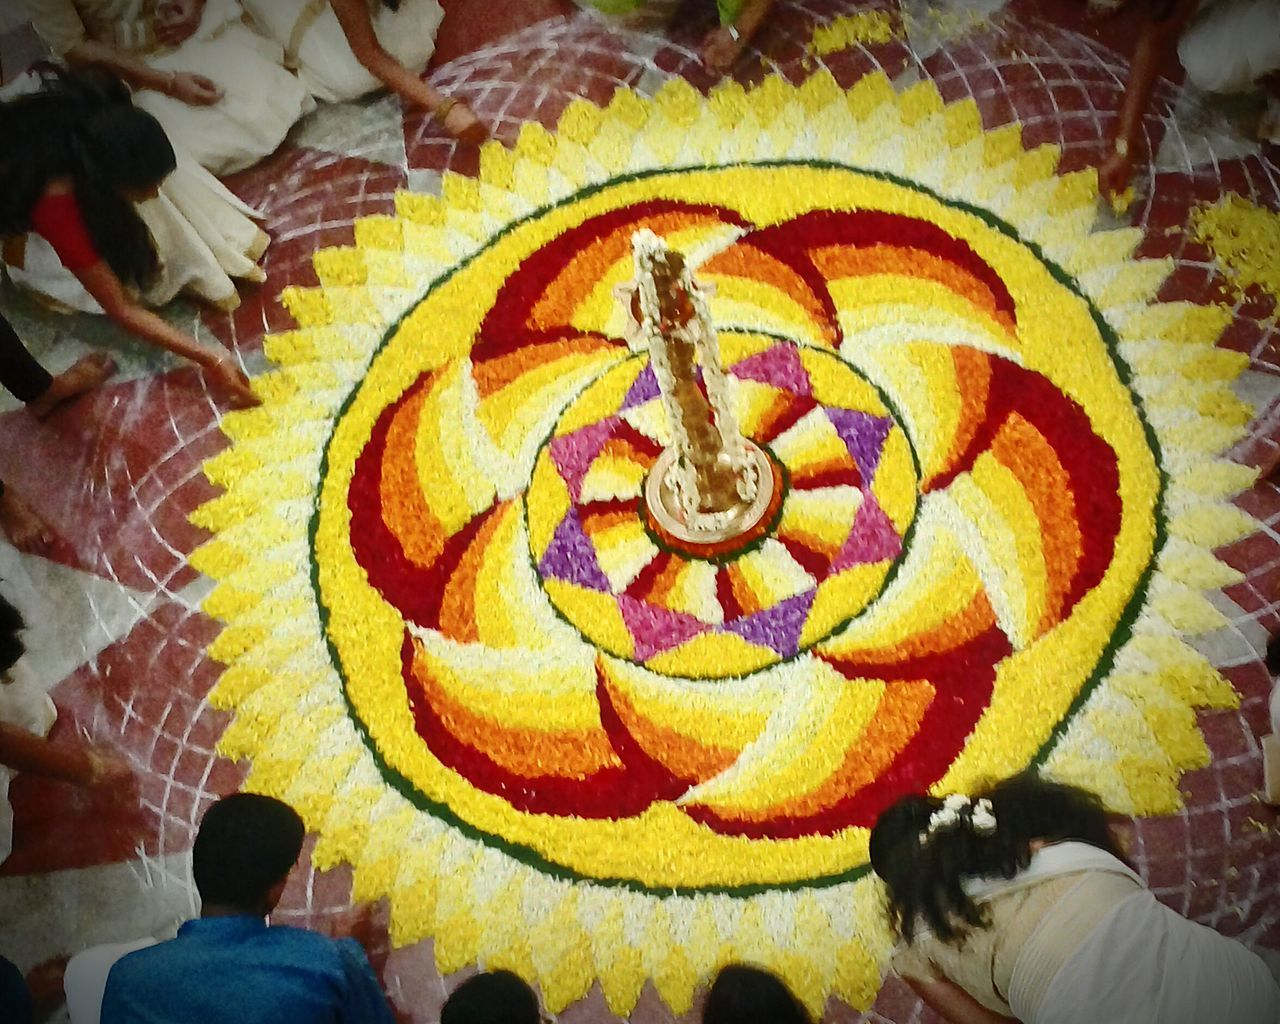 The Color Of School Art And Craft Art Creativity Multi Colored Person Culture History Onam Onamcelebrations Art And Craft Art Creativity Multi Colored Person Places History JainCollege